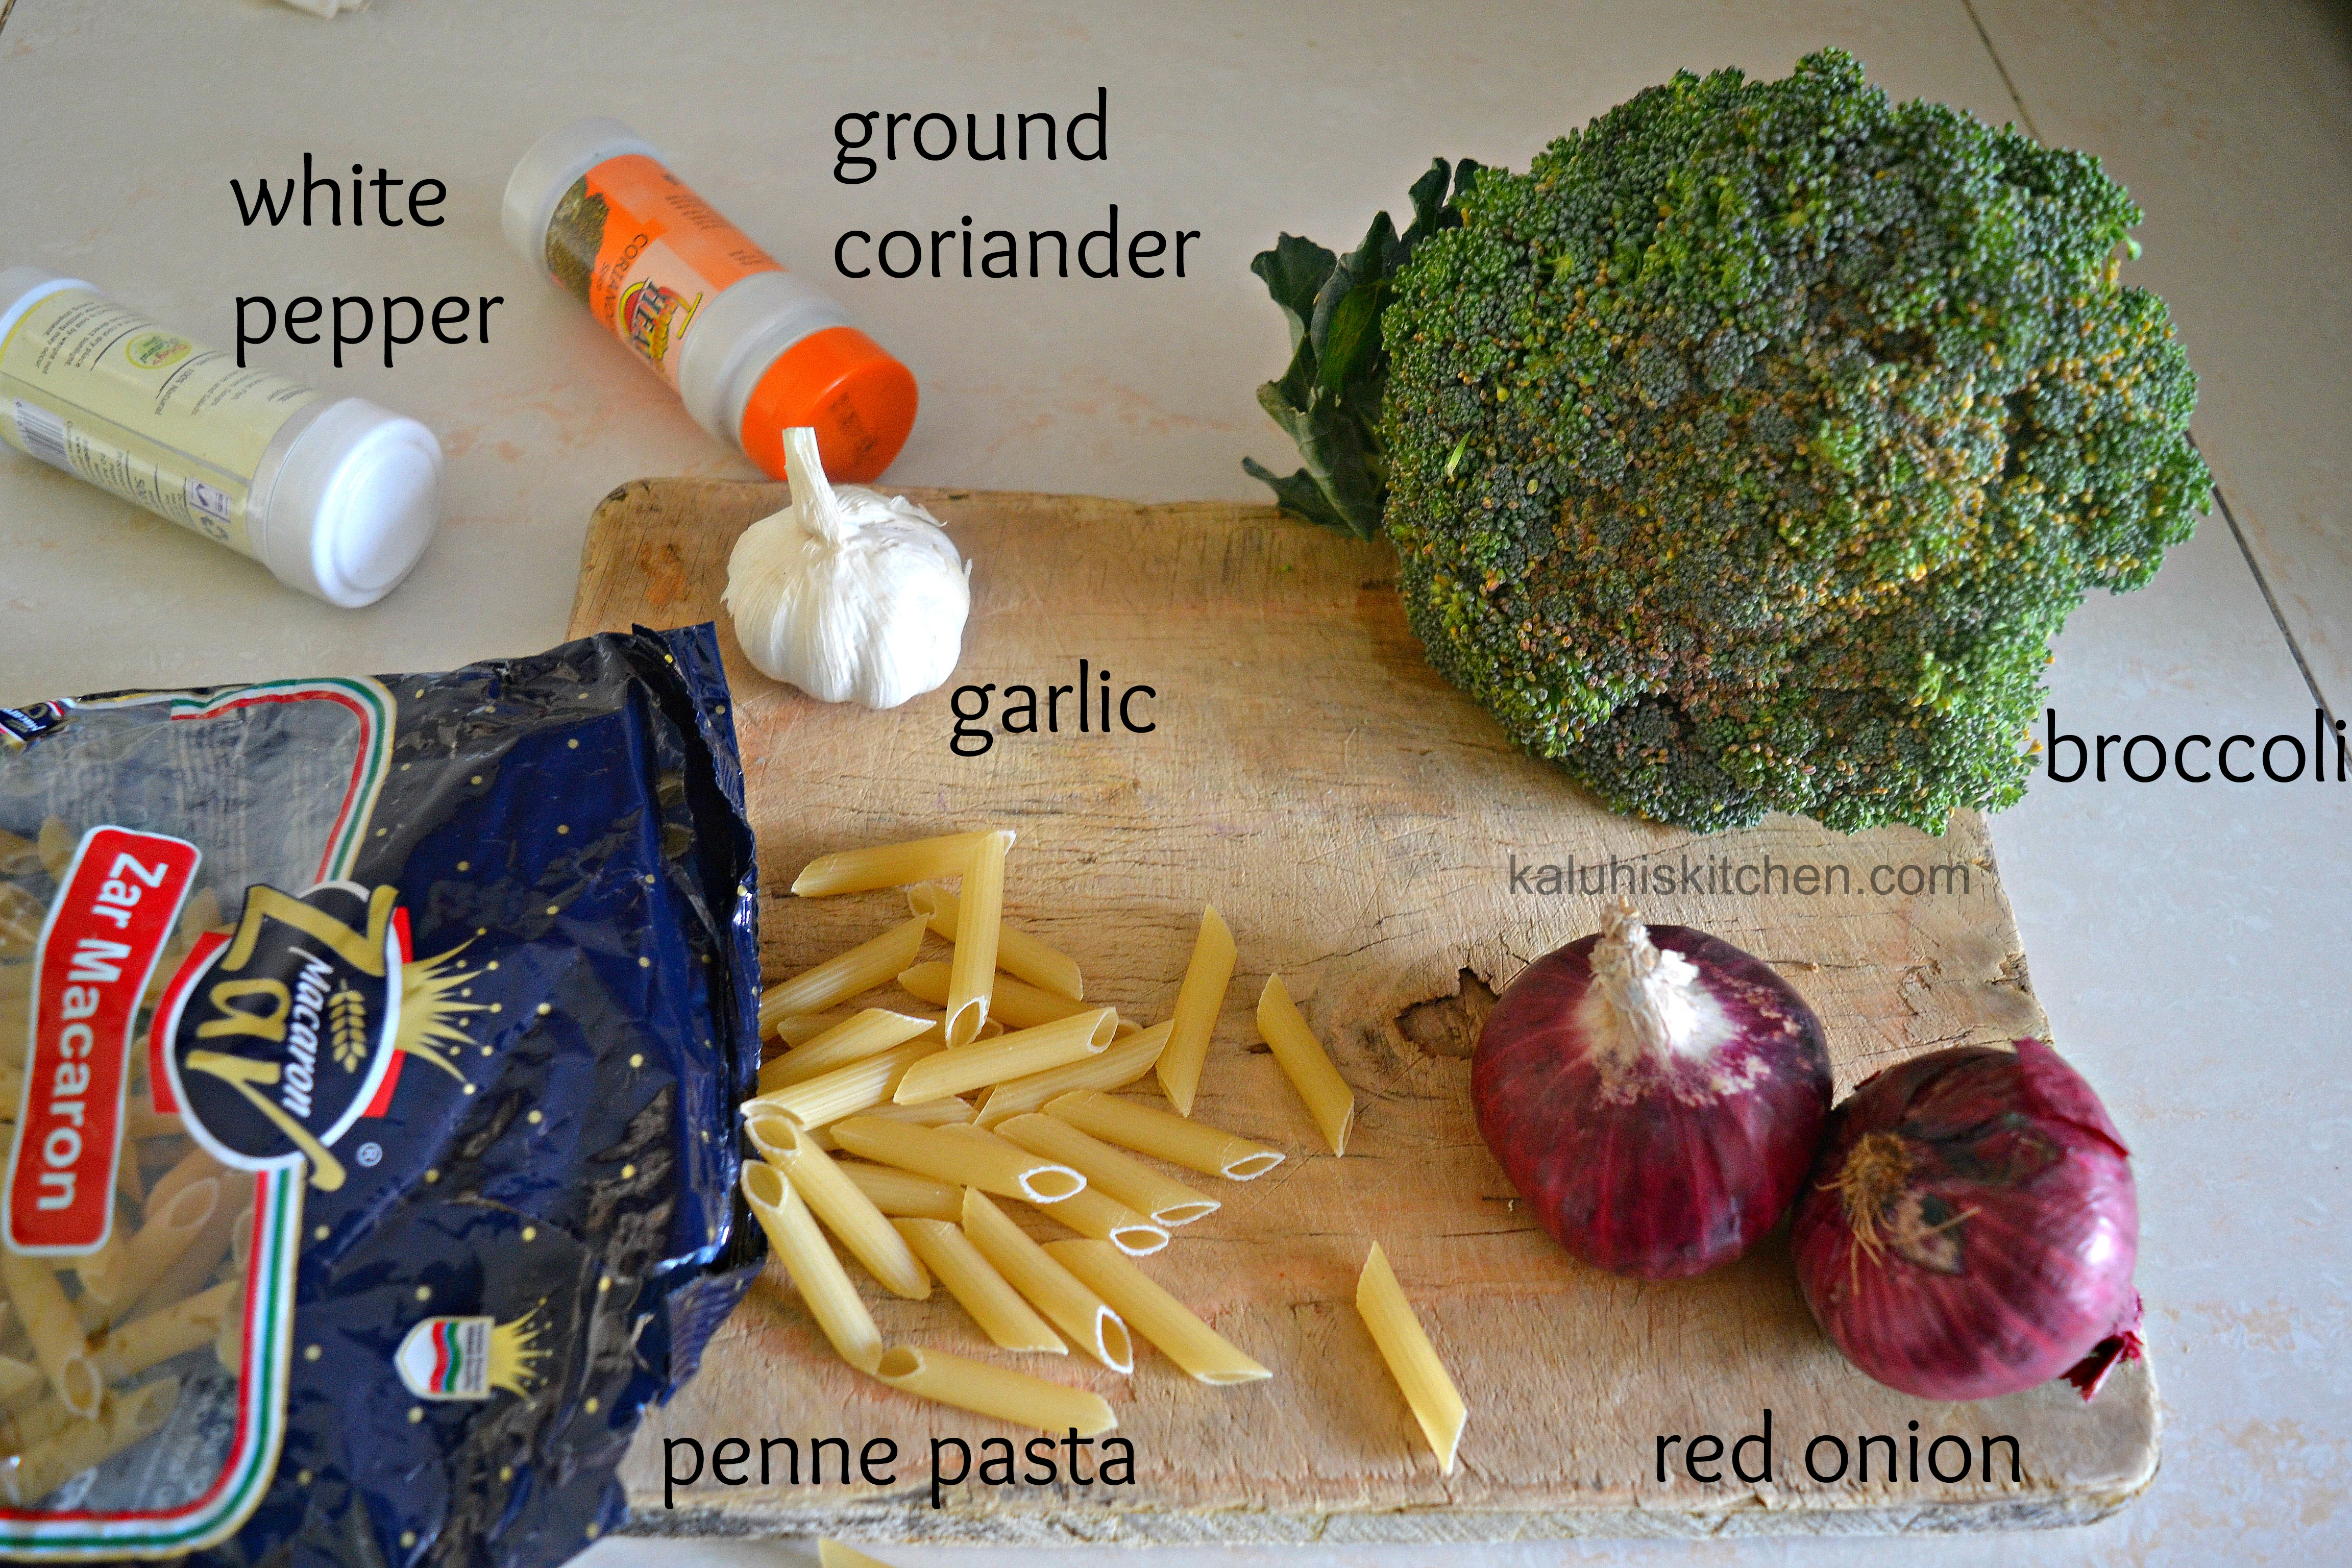 garlic and broccoli penne stir fry_ingredients fro a pasta stir fry_kaluhiskitchen.com